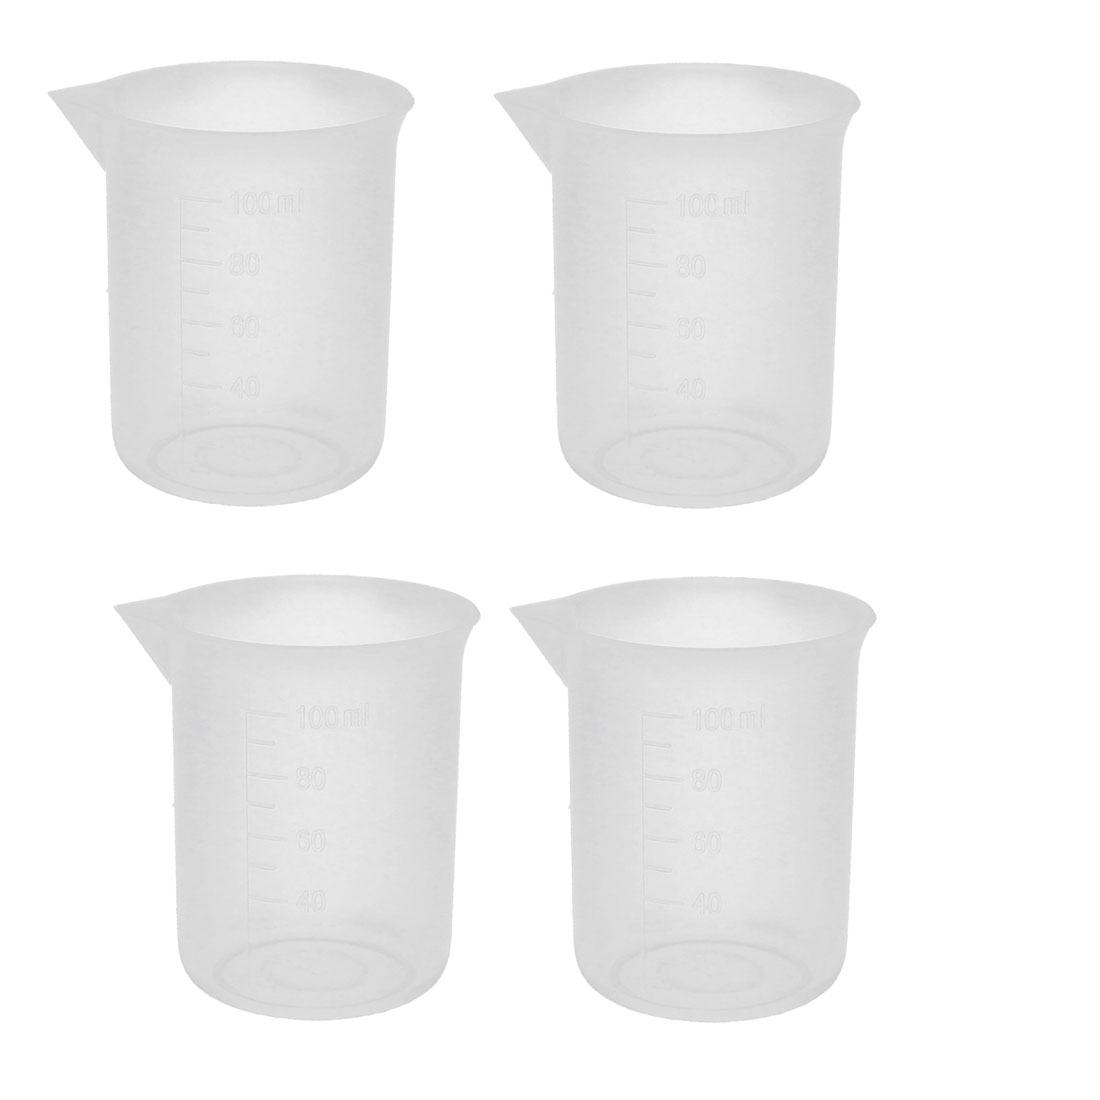 100ml Lab Test Plastic Graduated Measuring Beaker Cup Container 4 Pcs